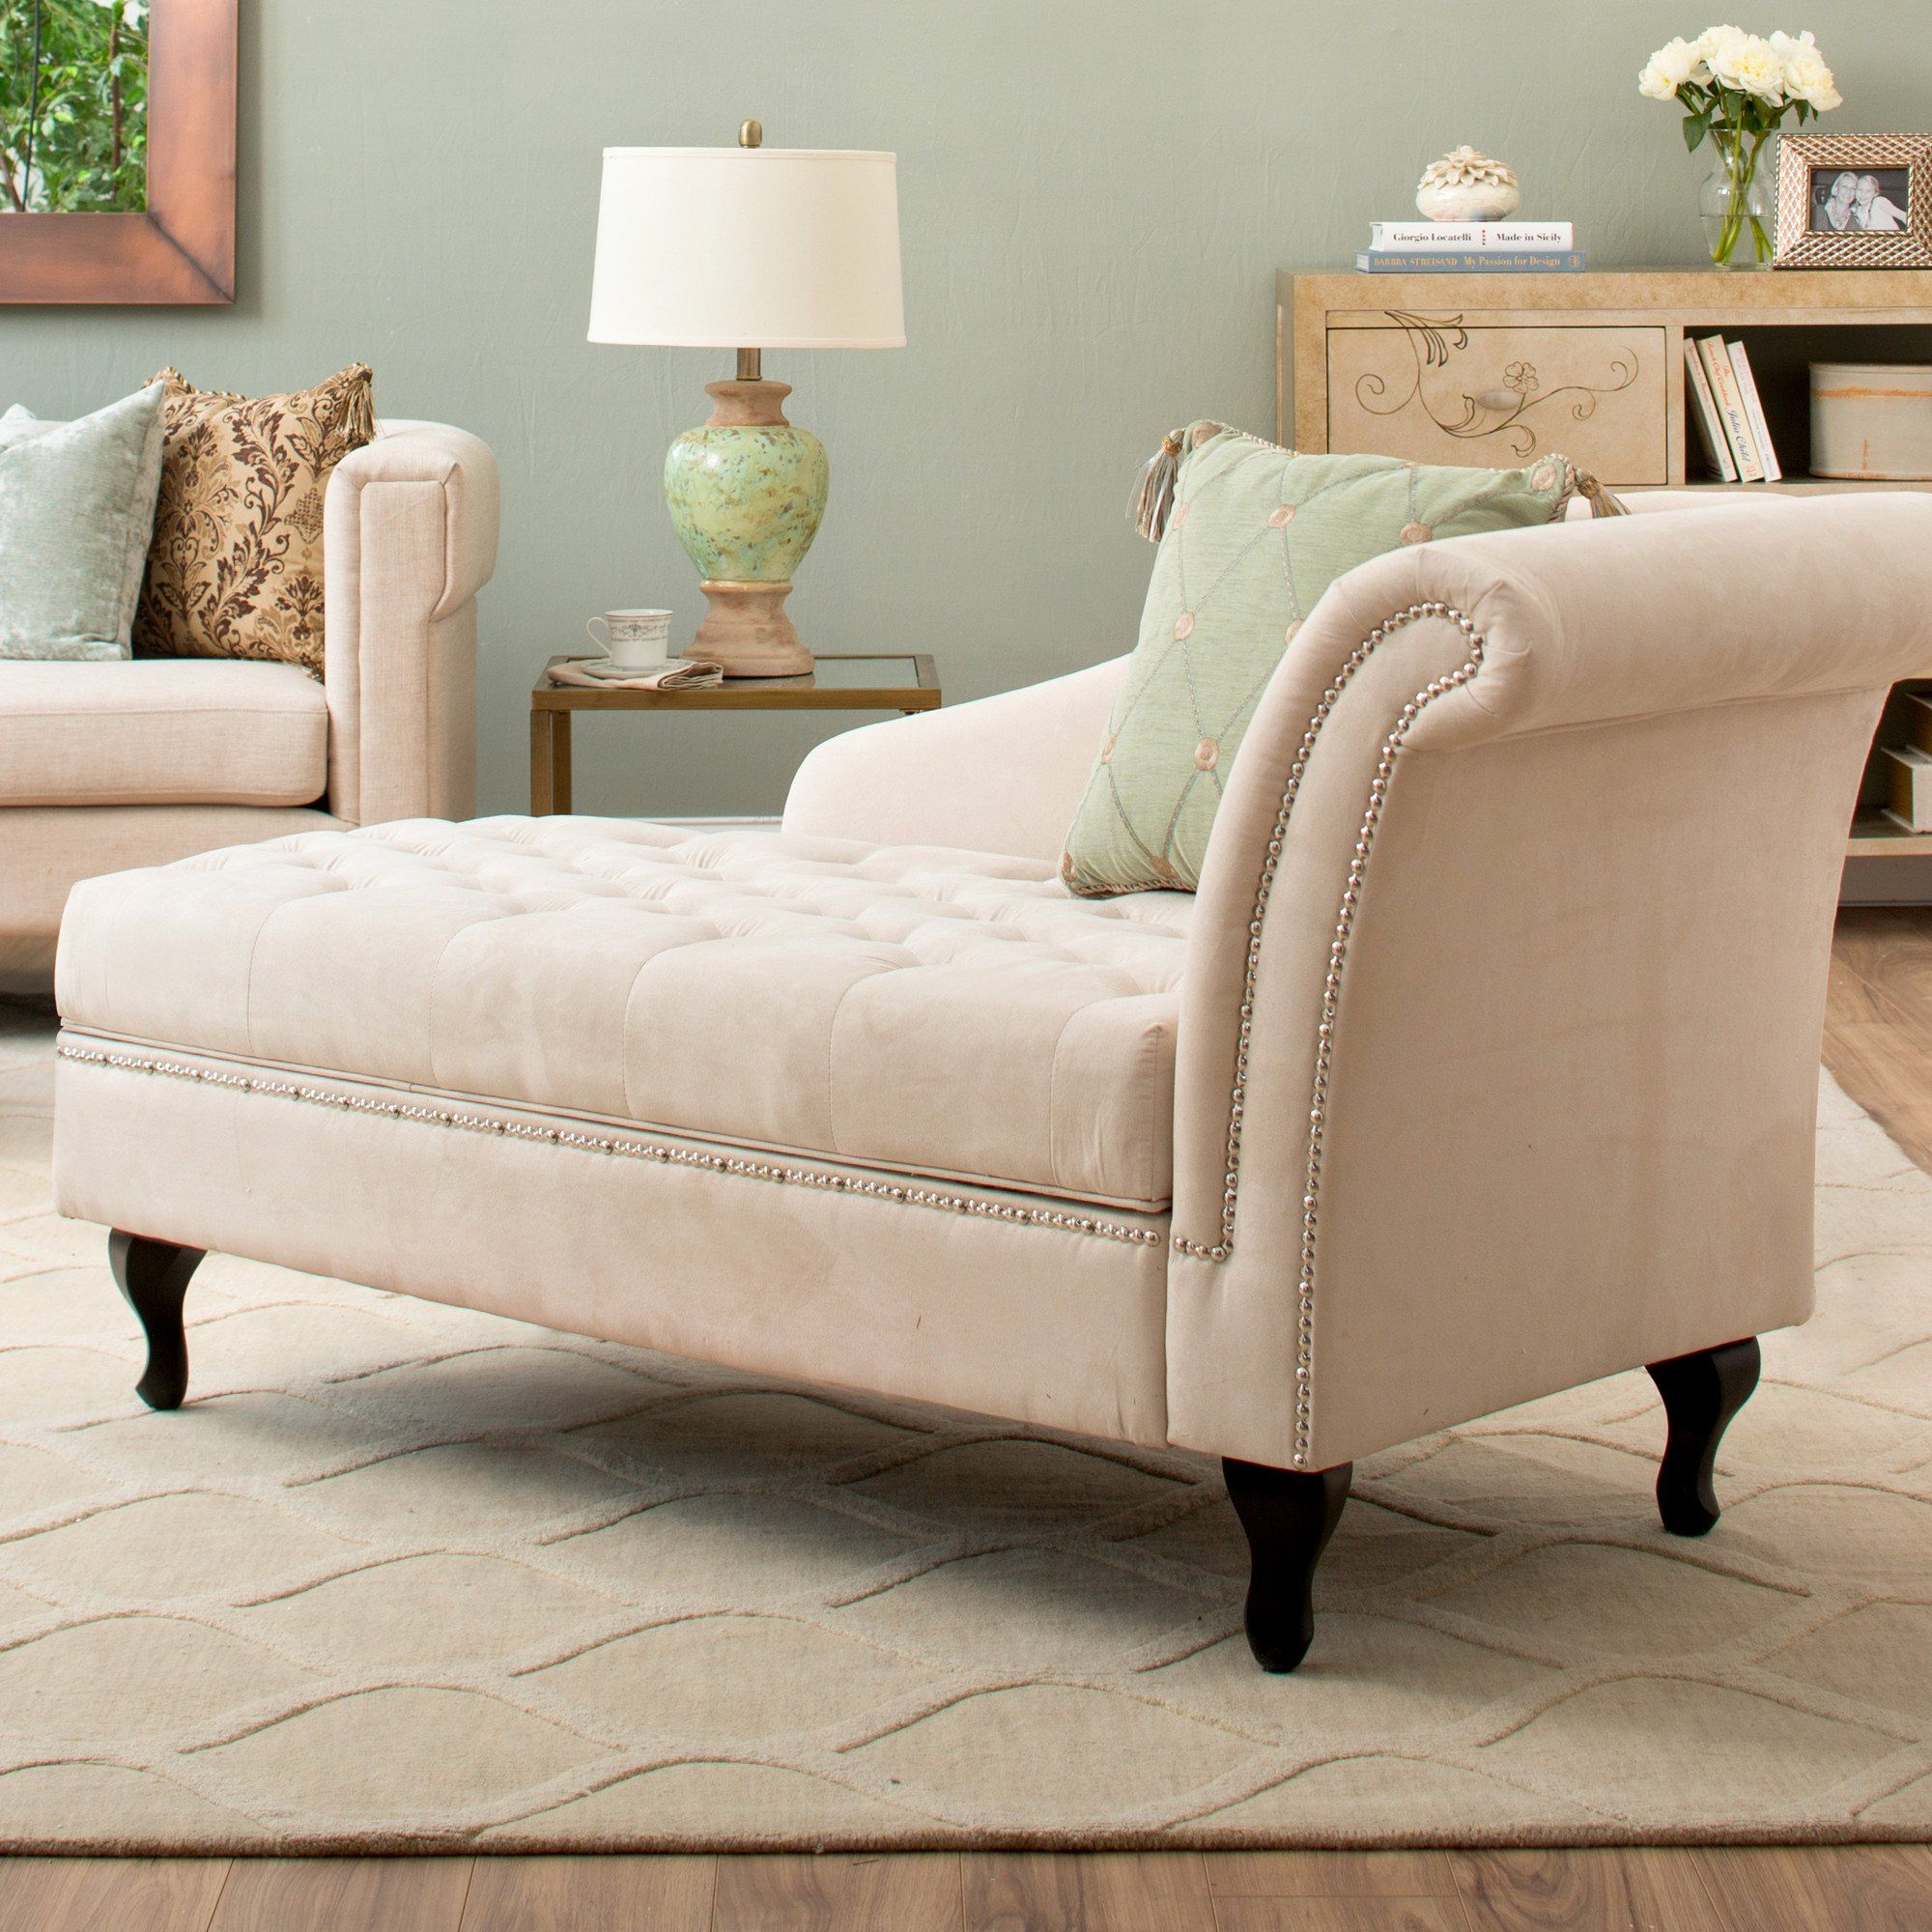 Storage Chaise Lounge Luxurious Tufted Classic/traditional